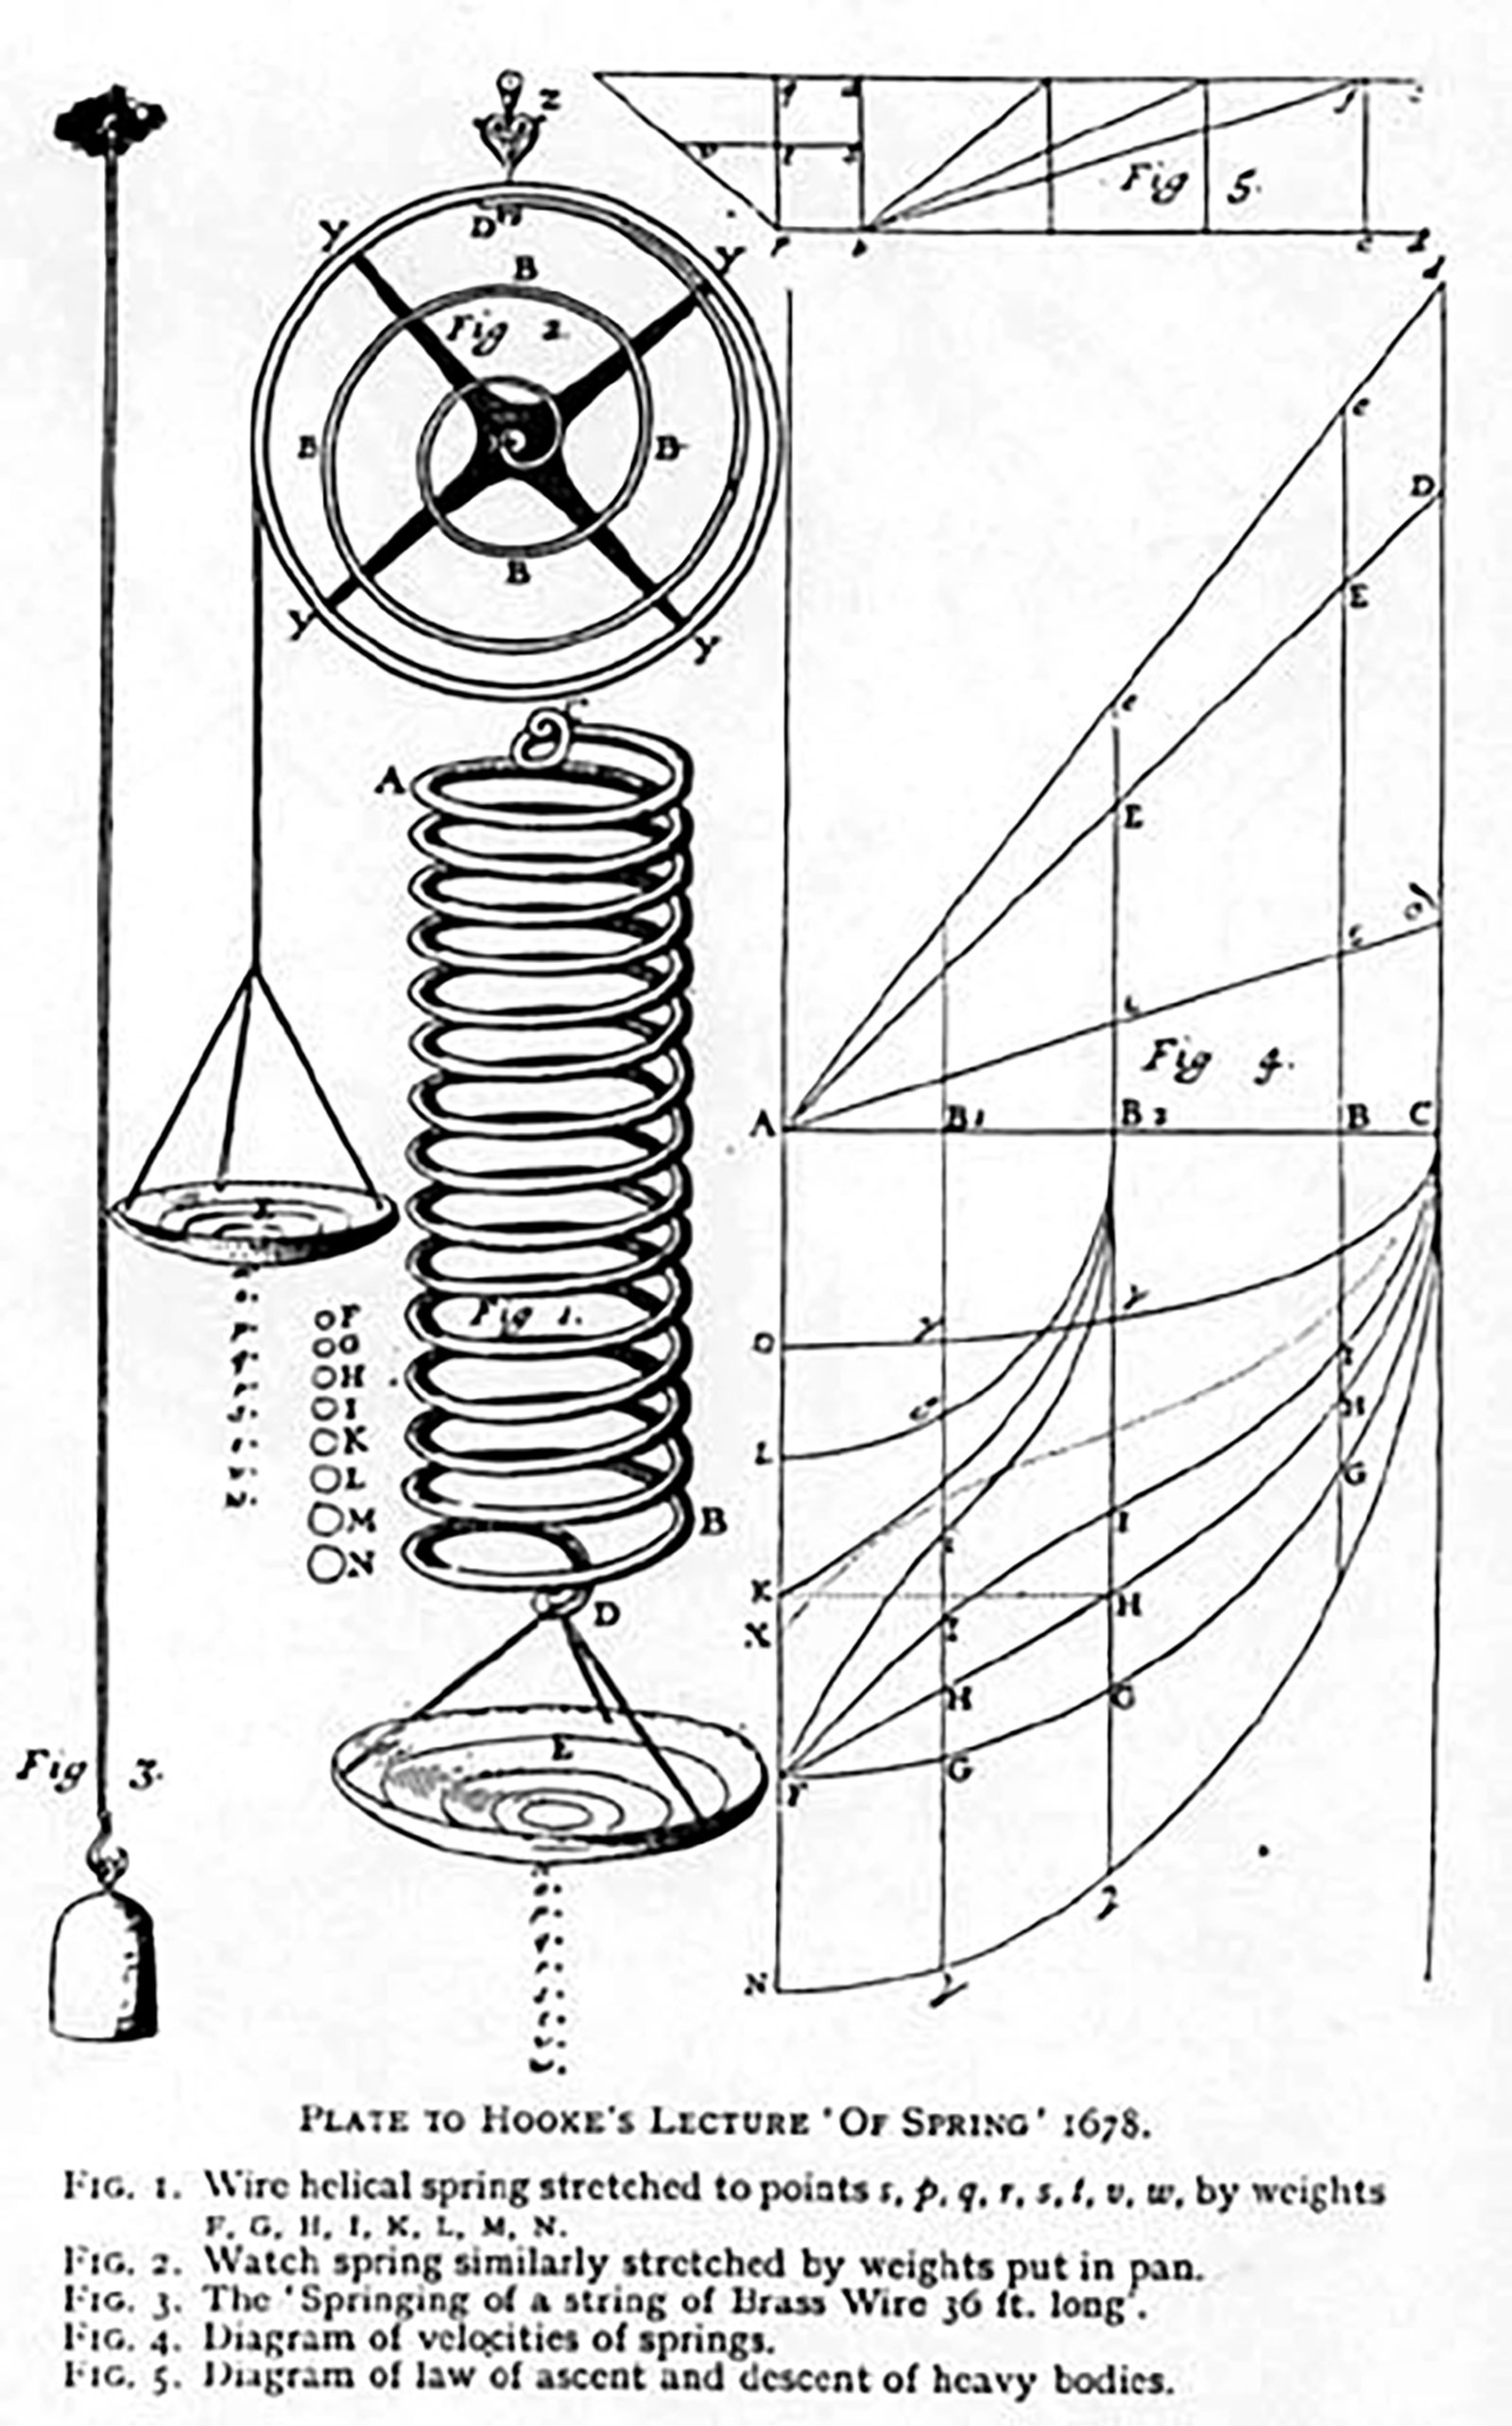 Robert Hooke 1678 Of Springs lecture